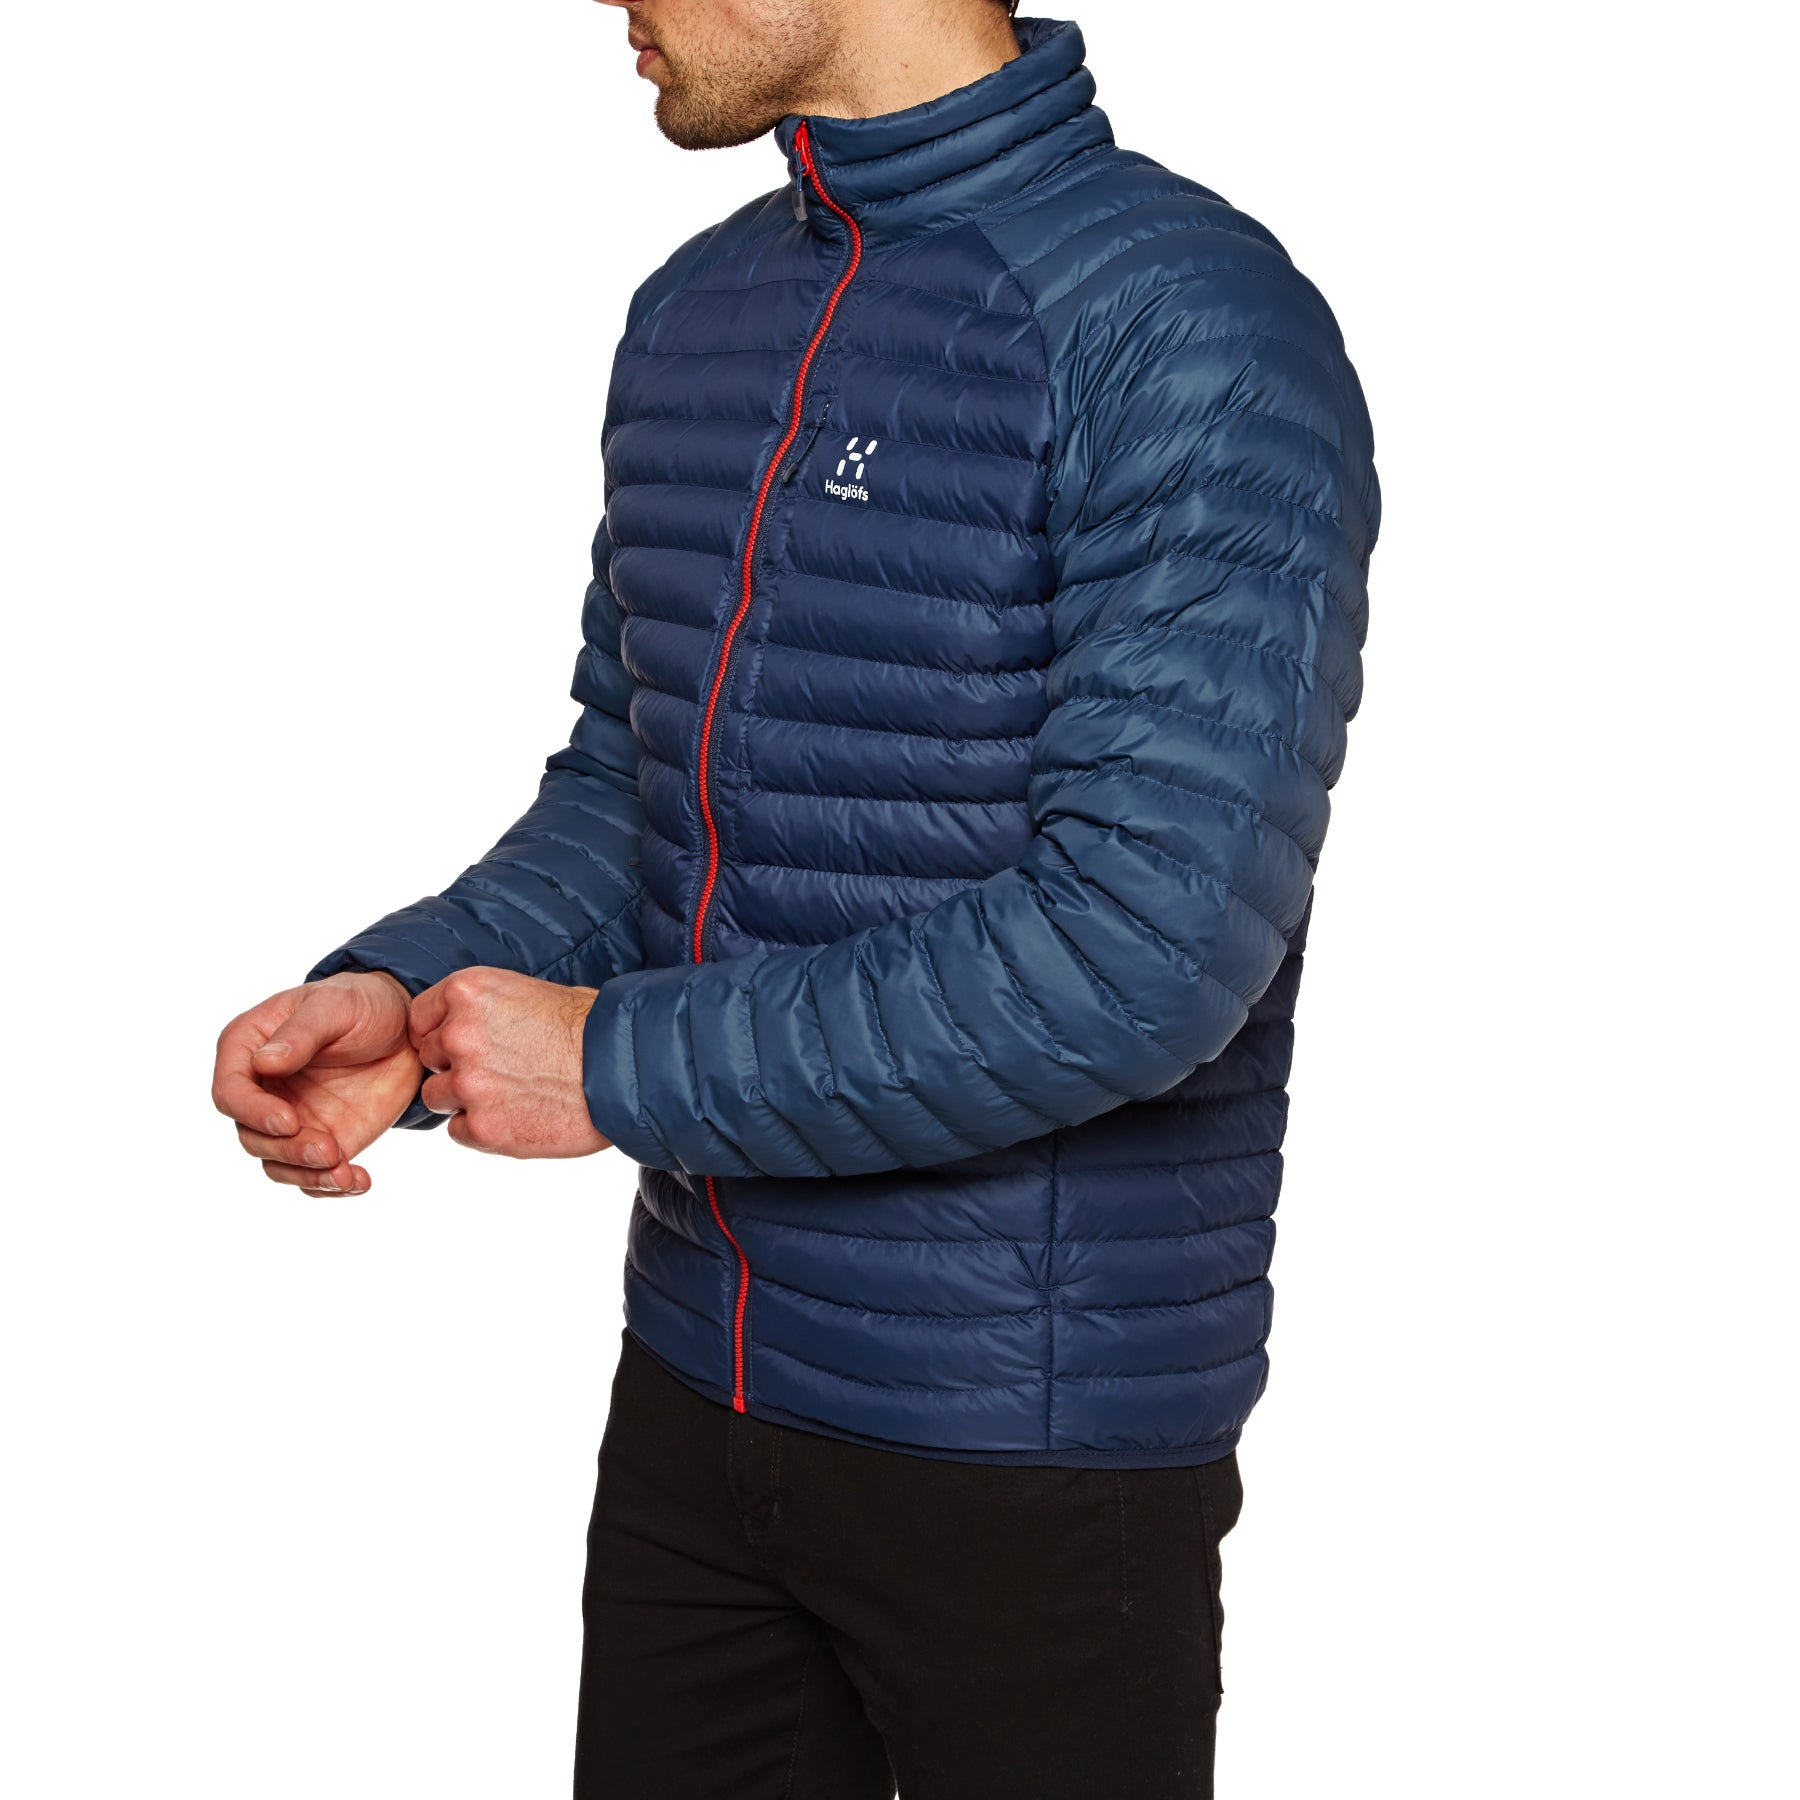 Haglofs Essens Mimic Jacket - Tarn Blue Blue Ink